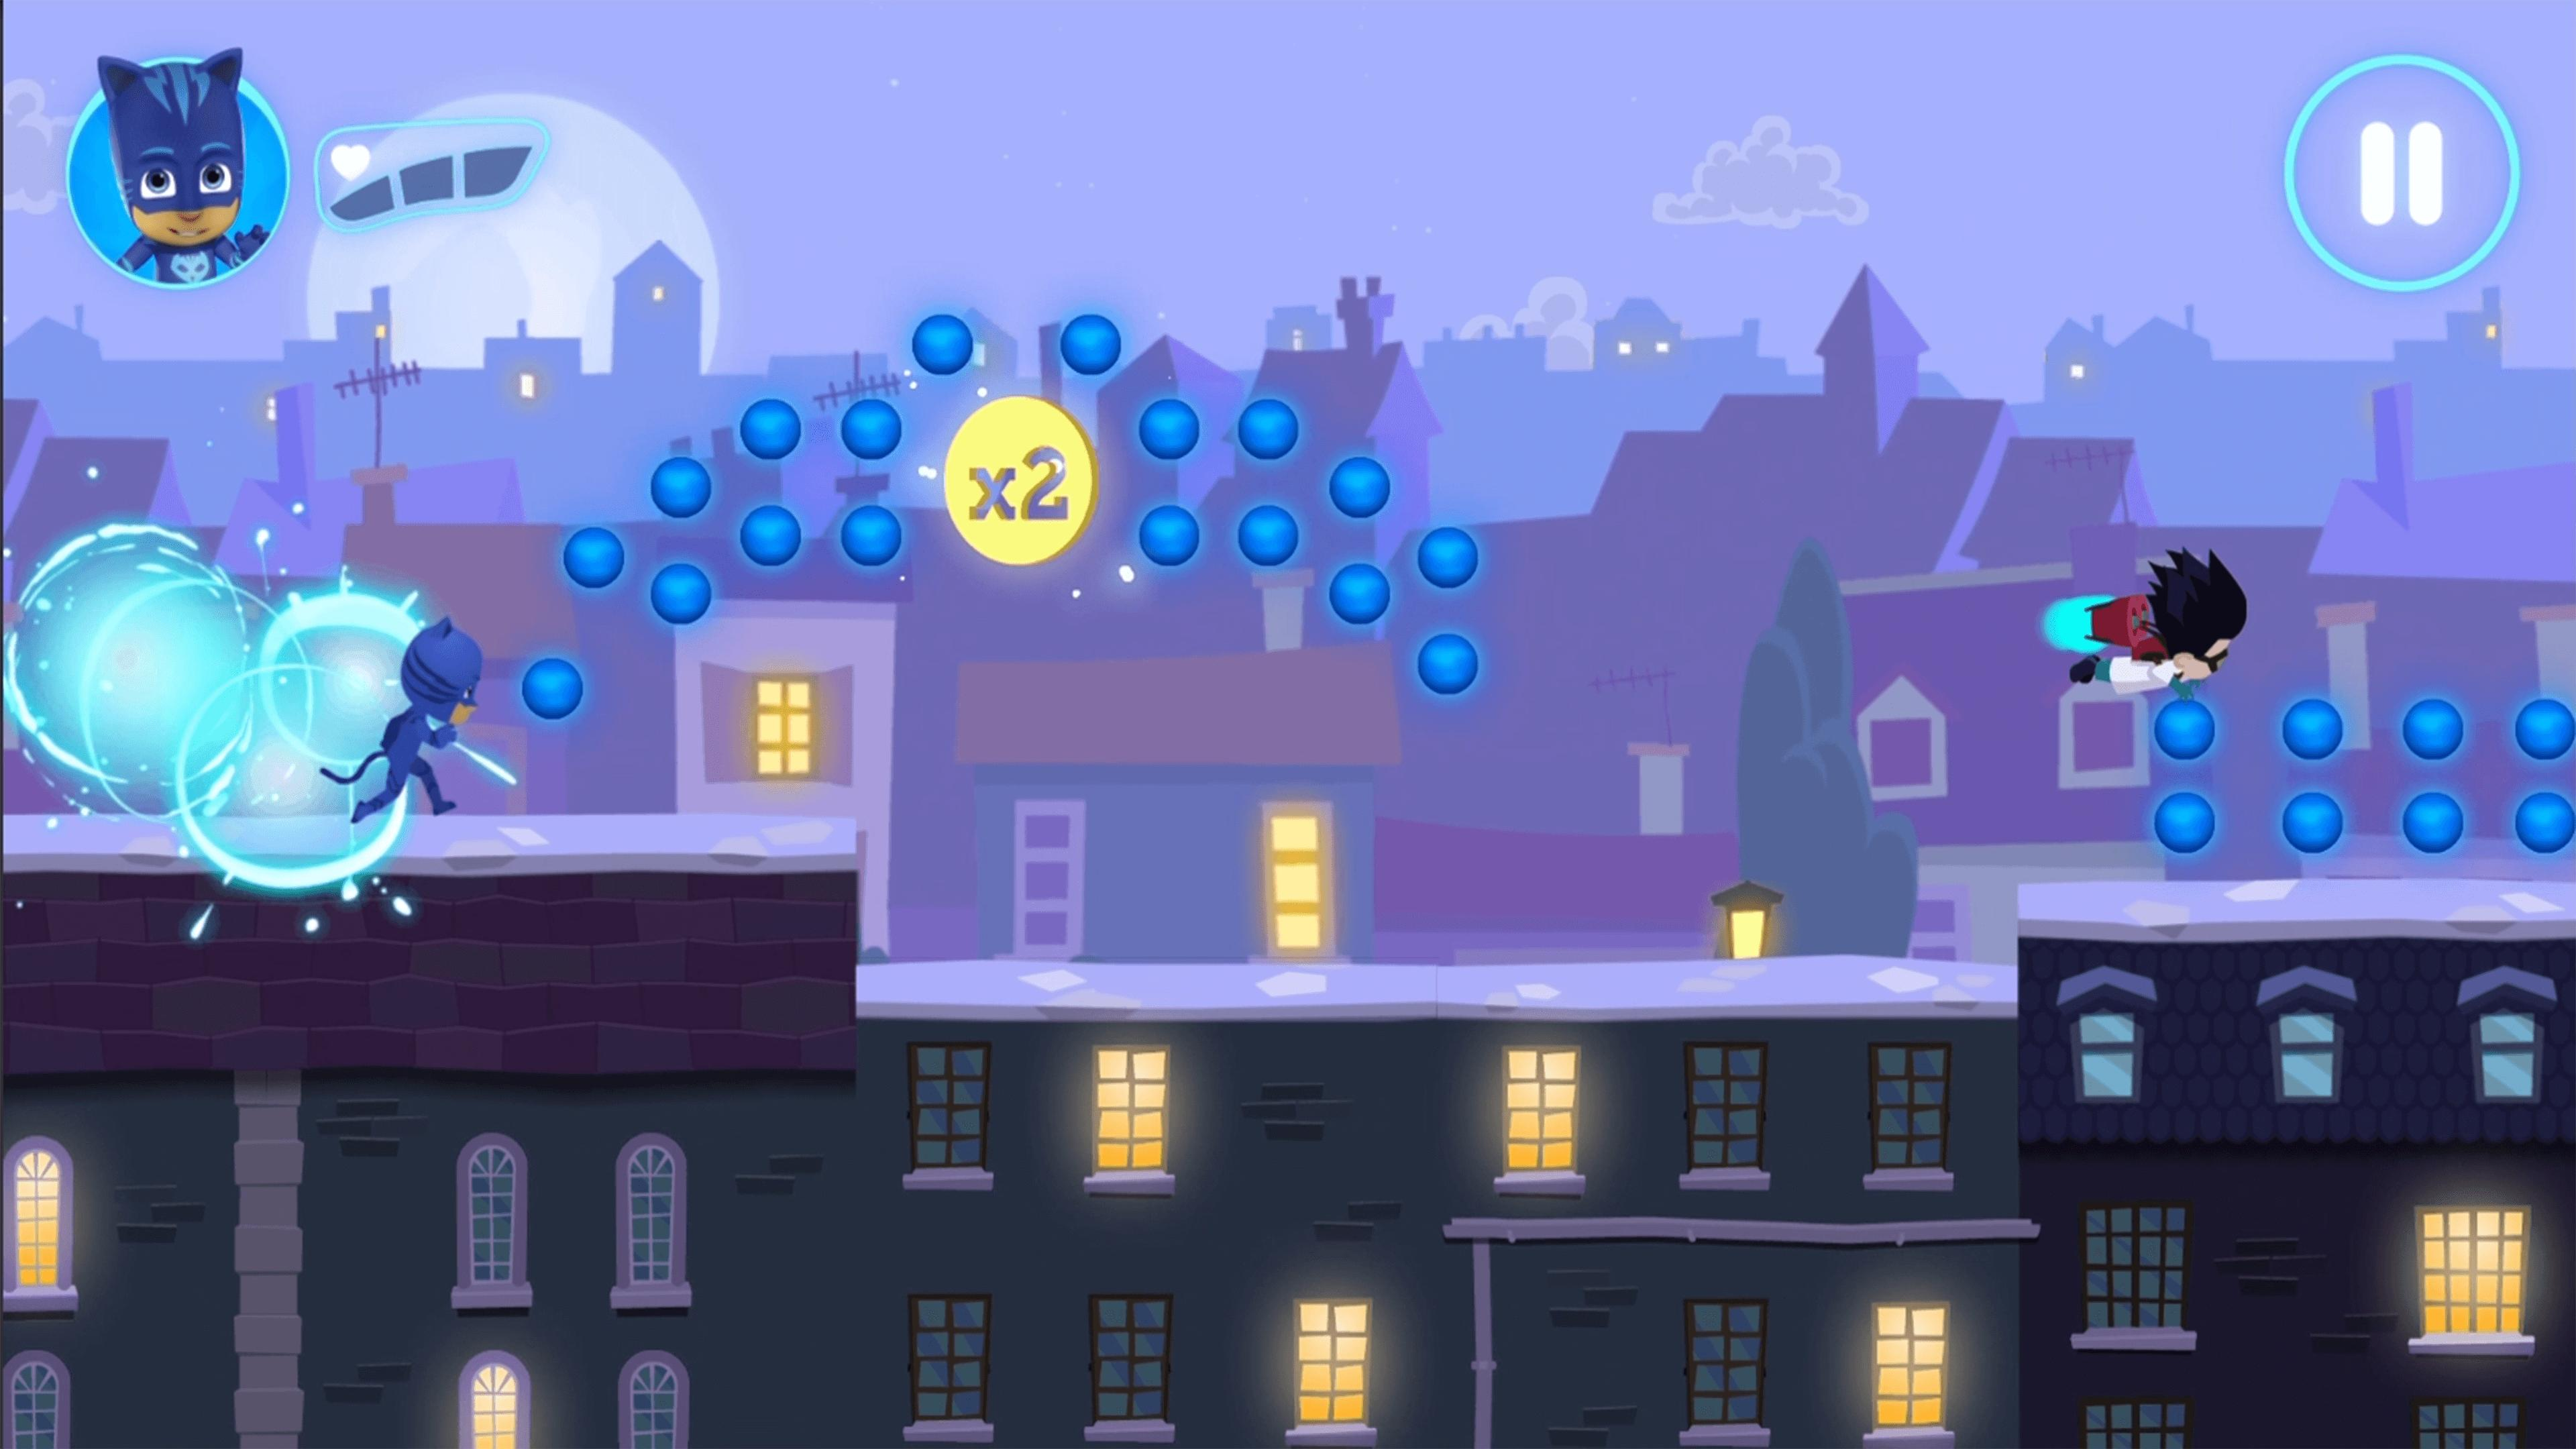 PJ Masks: Moonlight Heroes for Android - APK Download